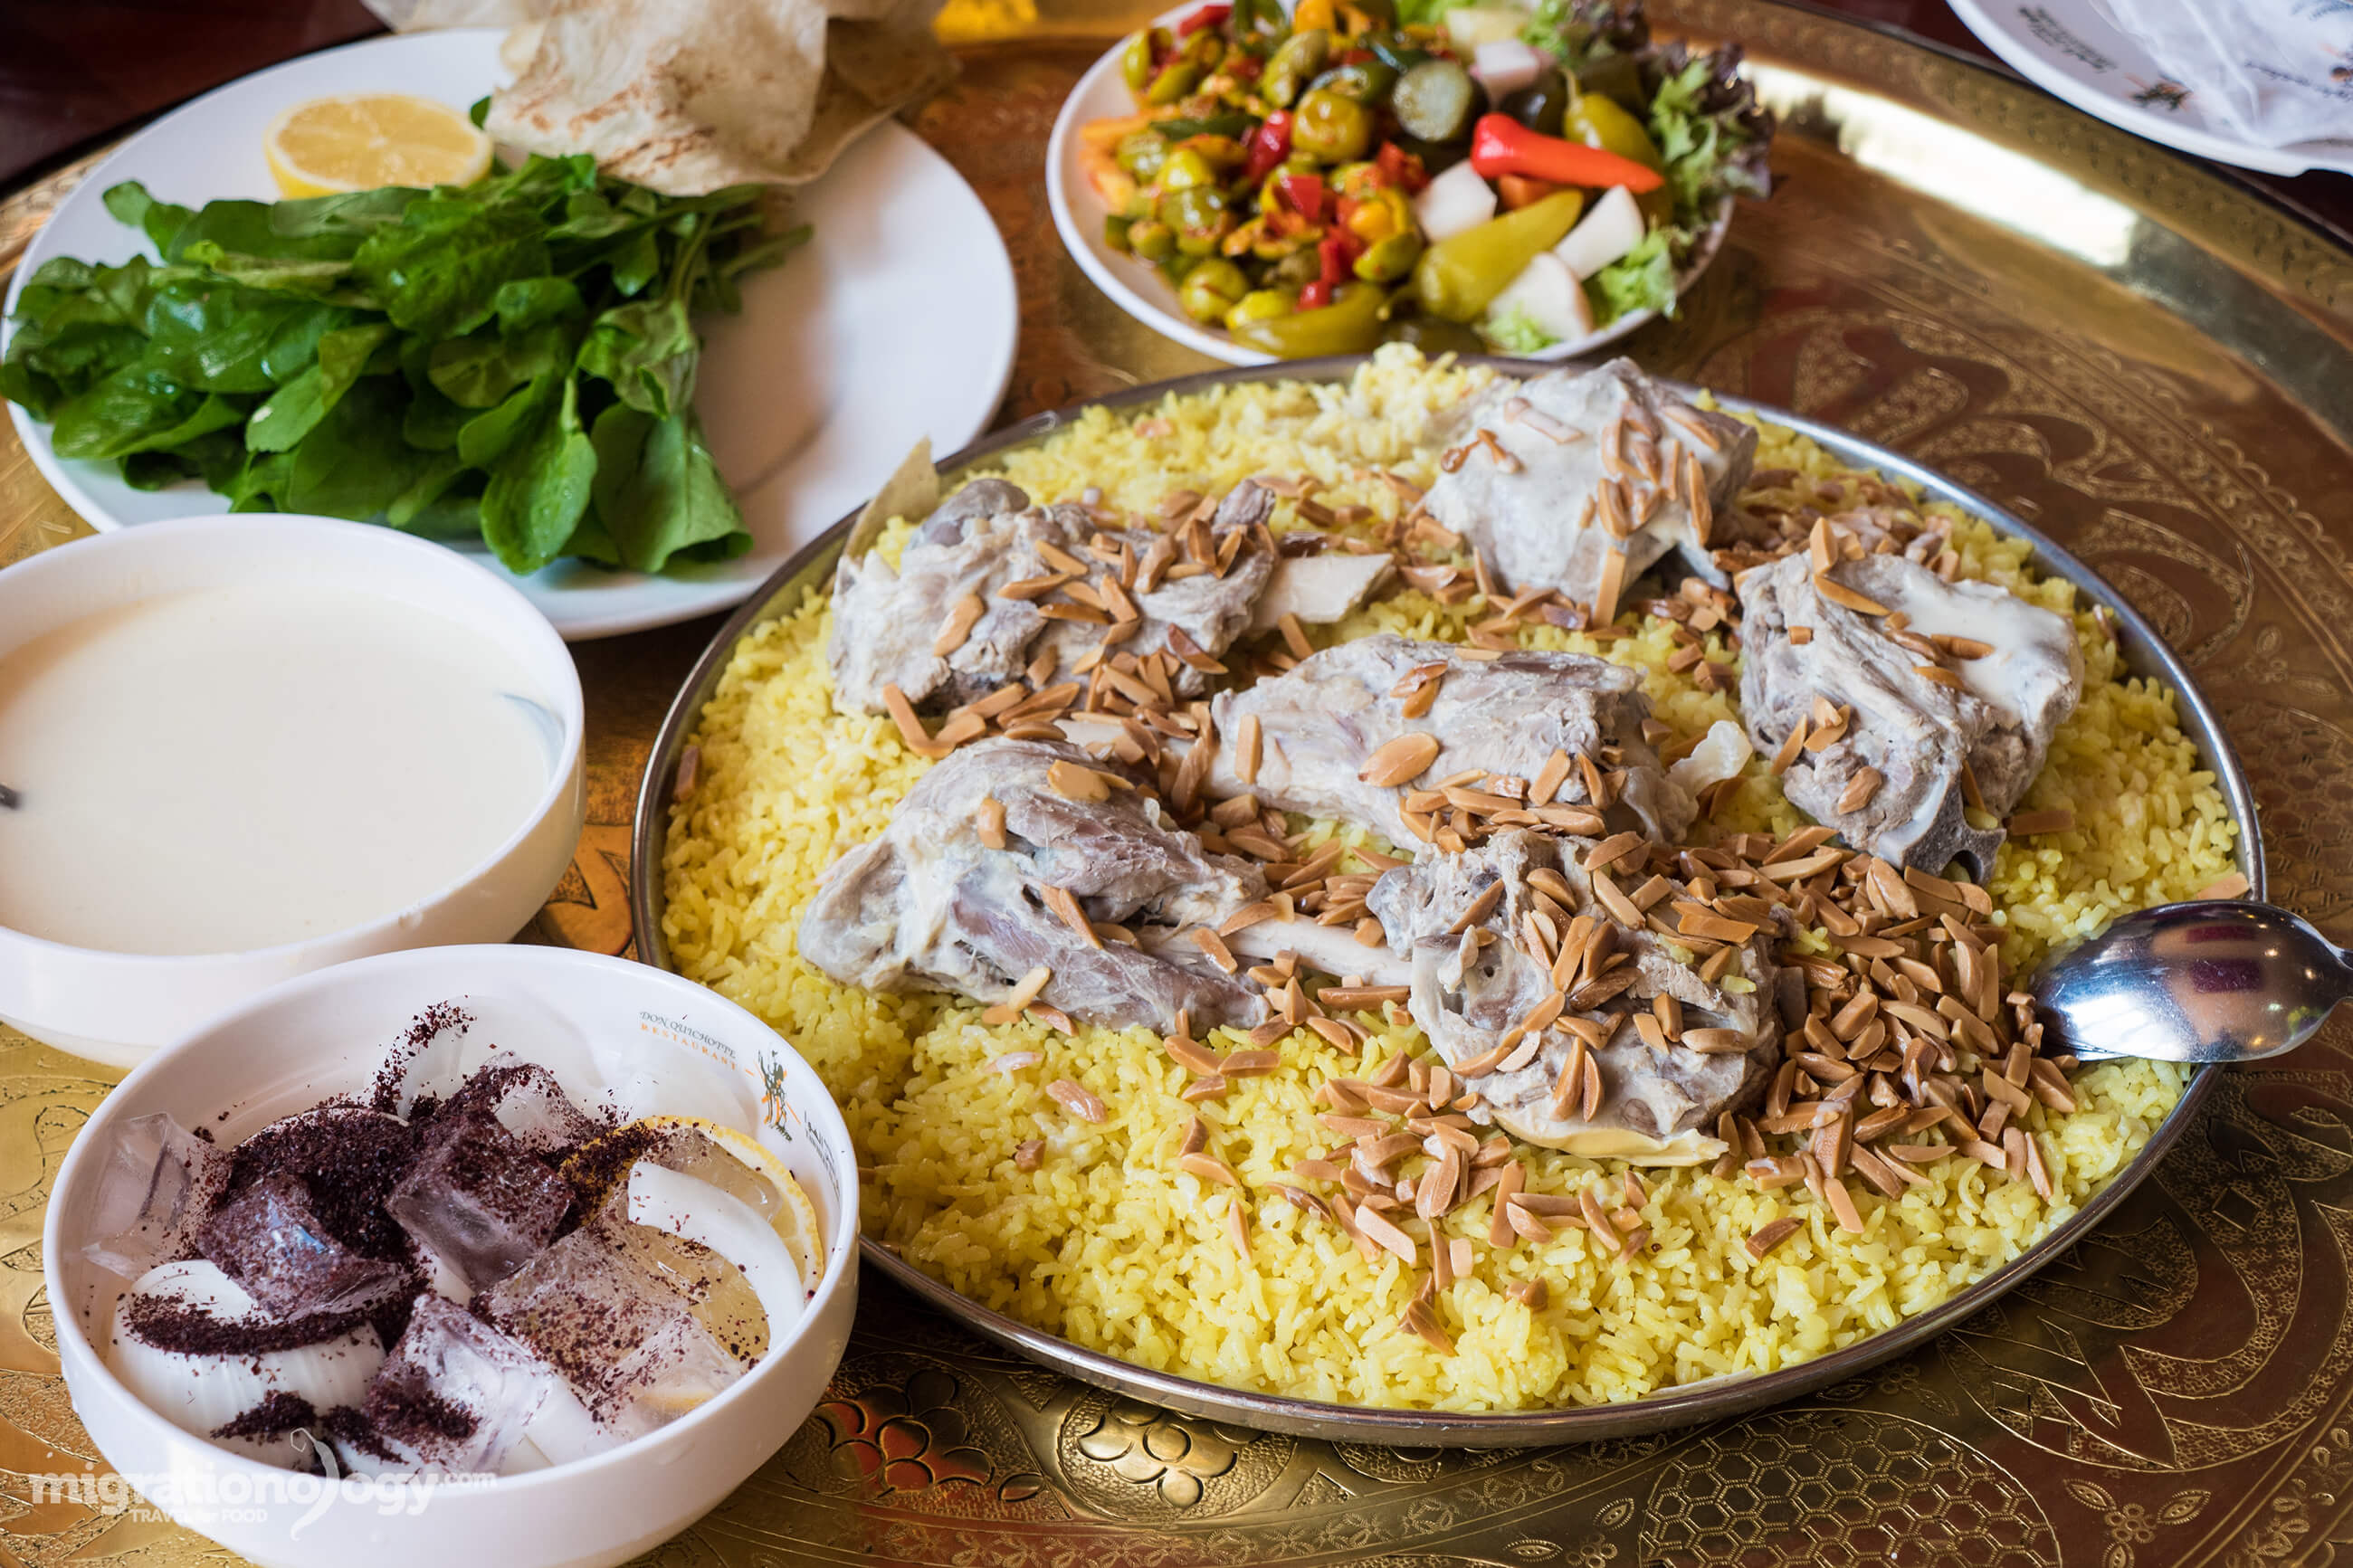 Mansaf is so important in Jordan that it's been known to resolve conflicts and restore peace within tribes in the country